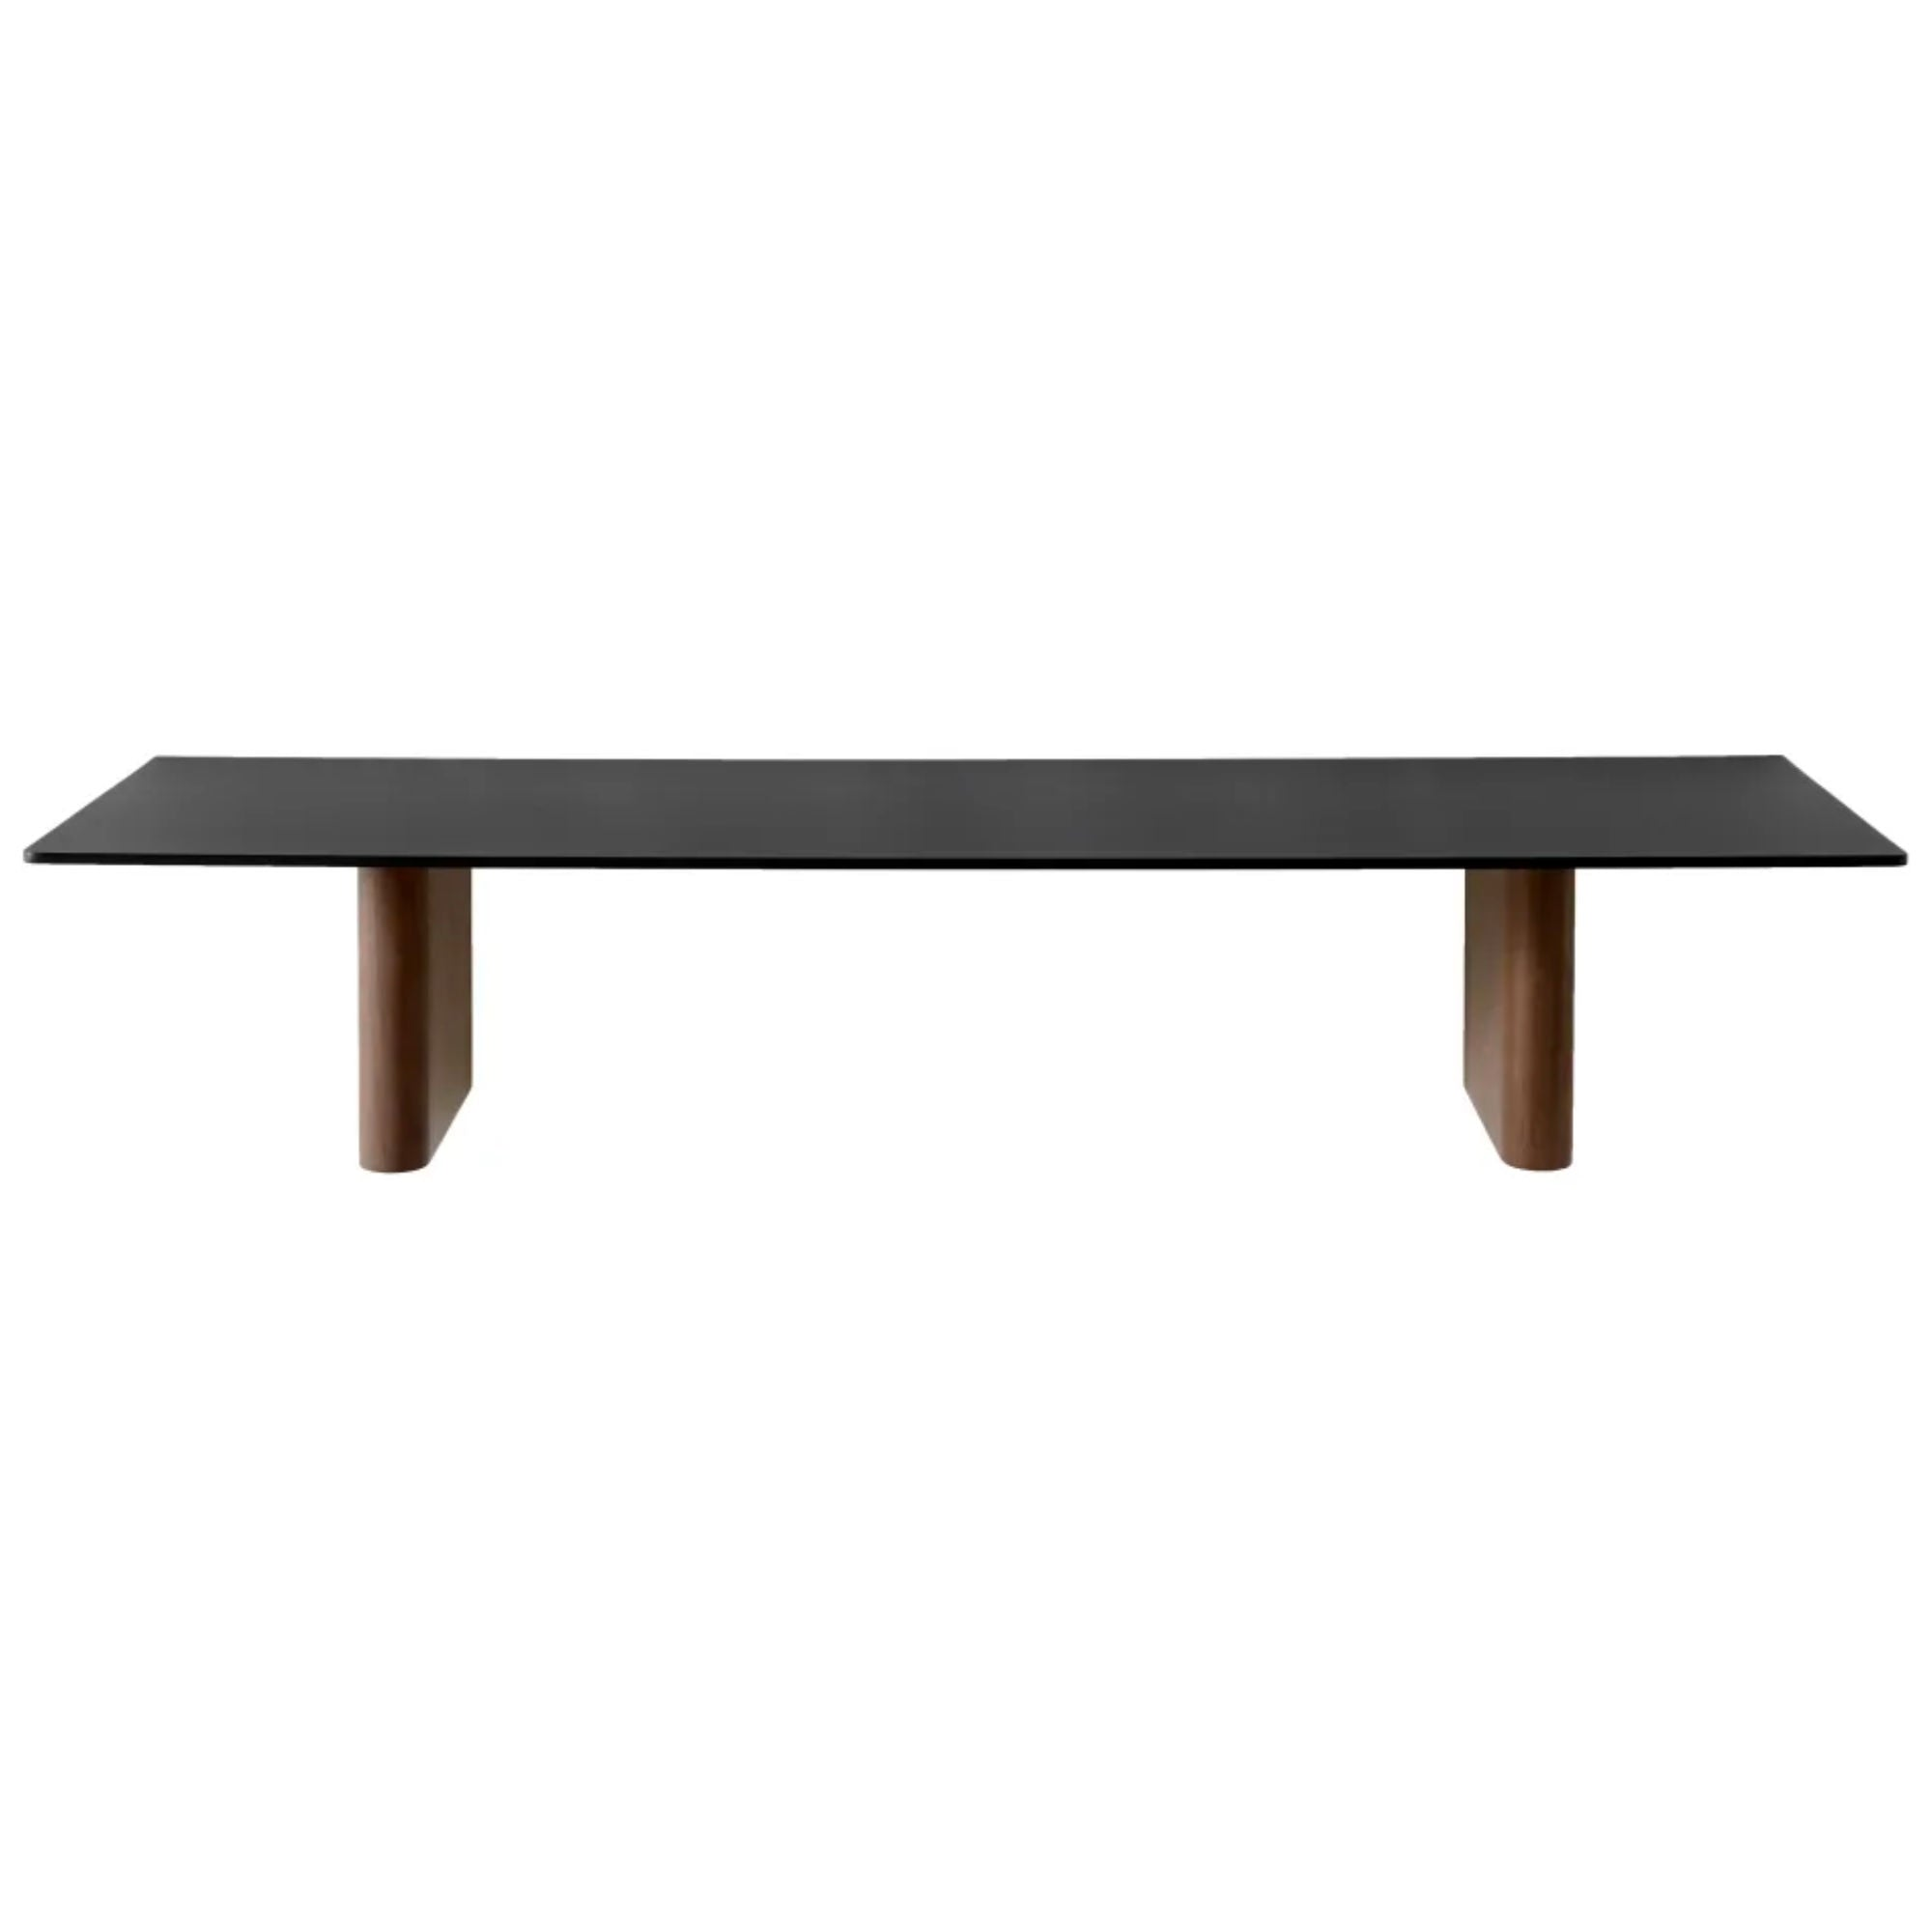 JA2 Column shelf, black anodised aluminium - solid walnut